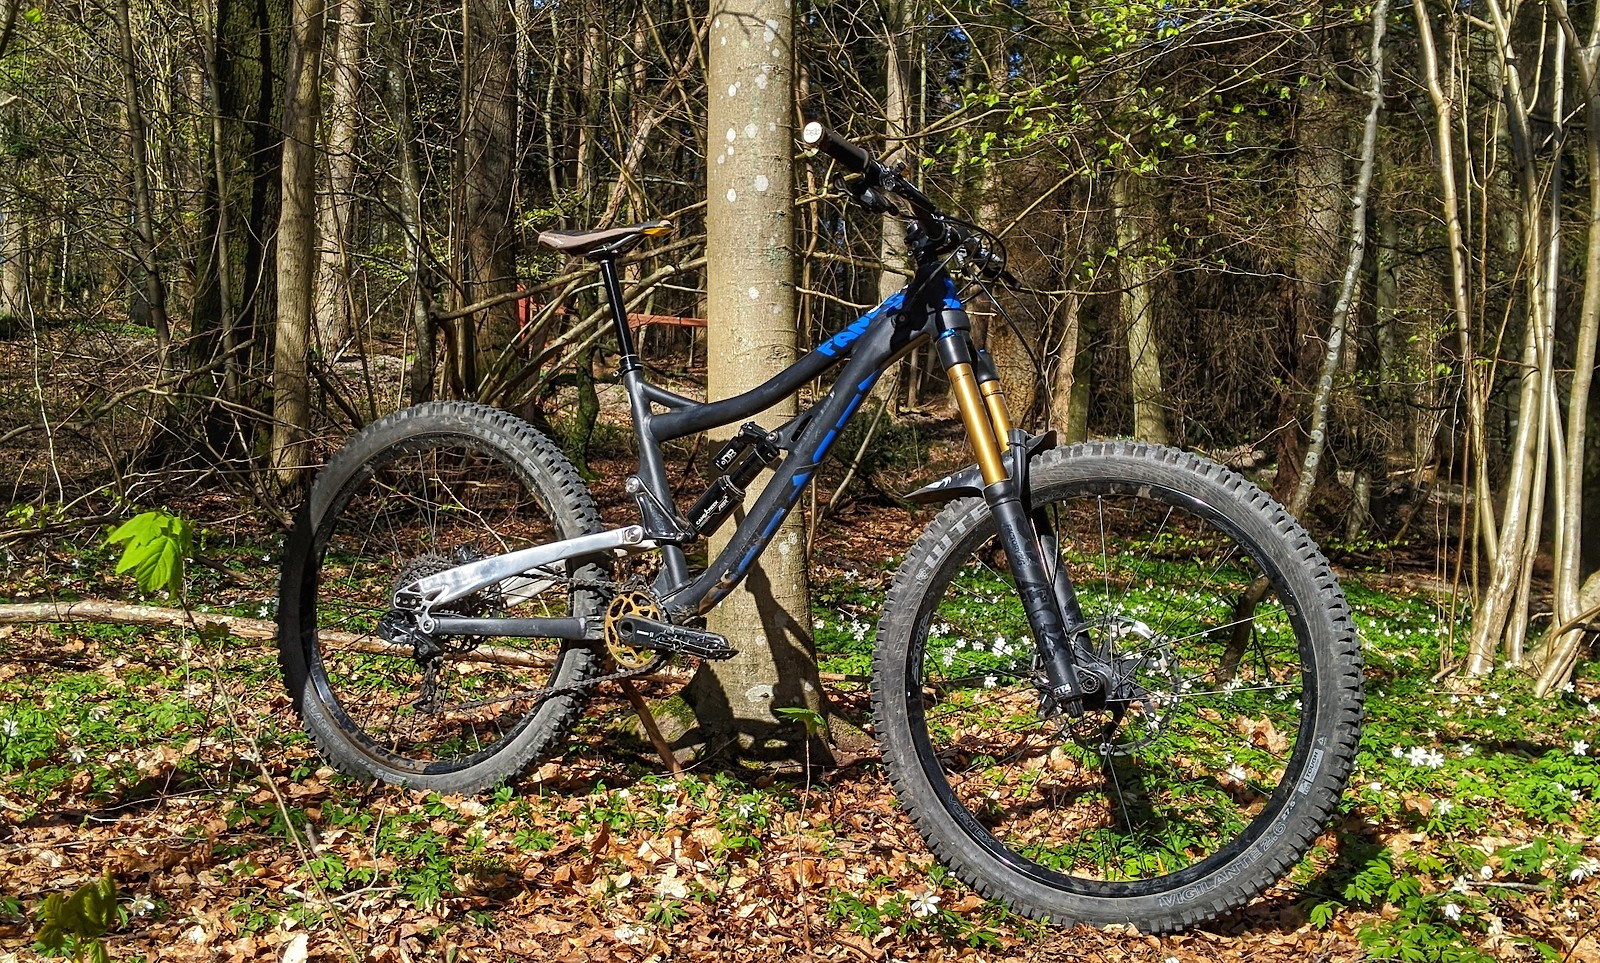 The Alutech Fanes 5.0 Race Ready model in all it's glory with 180mm travel front and back.